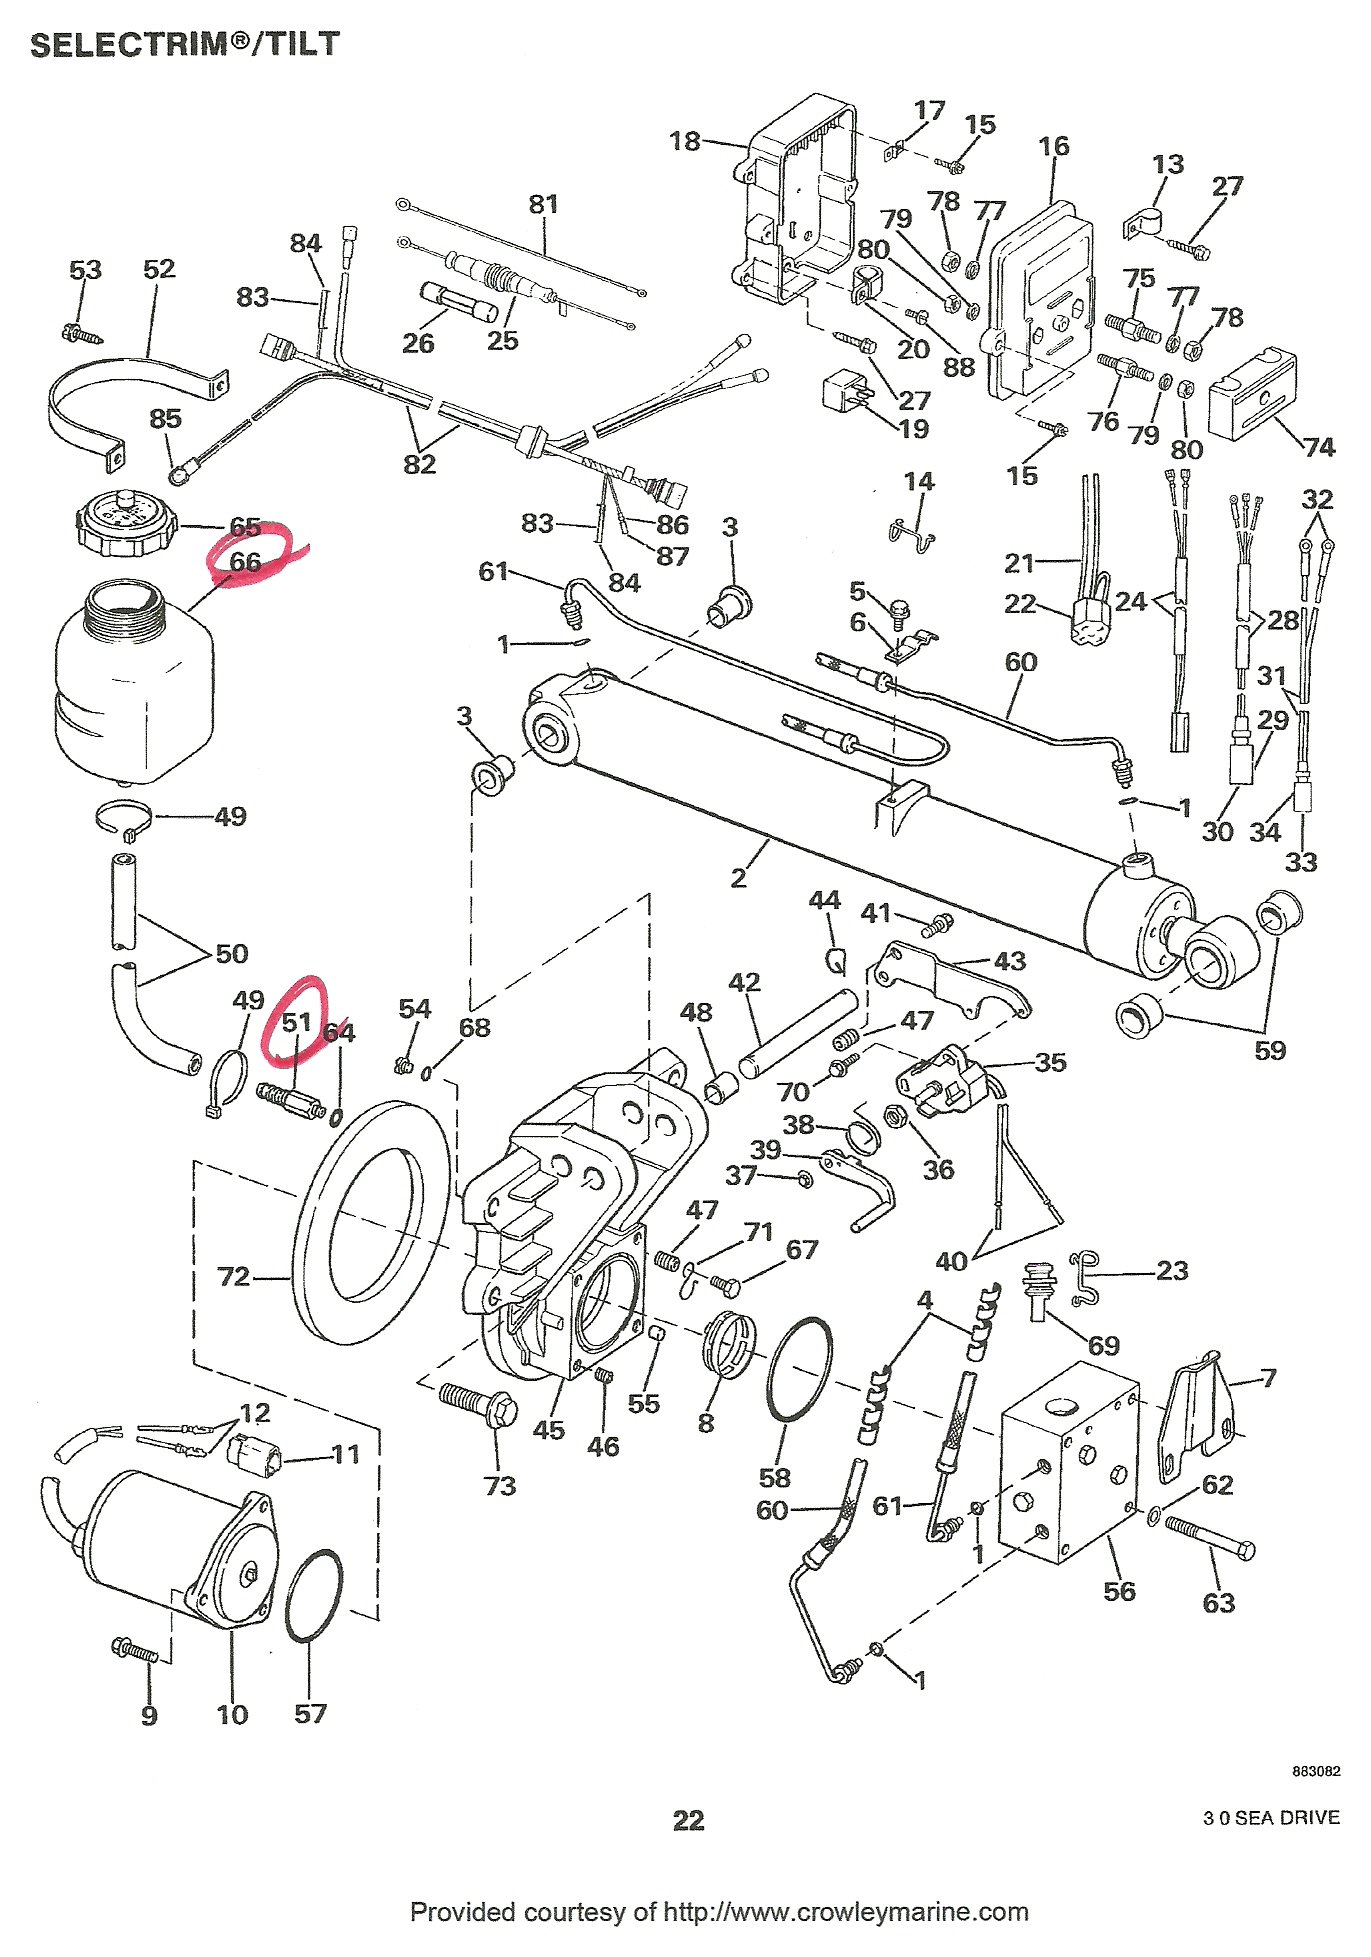 1972 50 hp evinrude wiring diagram, evinrude key switch wiring diagram, john deere wiring diagram, atlas wiring diagram, sea ray wiring diagram, omc schematic diagrams, ace wiring diagram, apc wiring diagram, nissan wiring diagram, 96 evinrude wiring diagram, johnson wiring diagram, chevrolet wiring diagram, viking wiring diagram, polaris wiring diagram, chris craft wiring diagram, regal wiring diagram, sears wiring diagram, clark wiring diagram, omg wiring diagram, on omc v4 wiring diagram